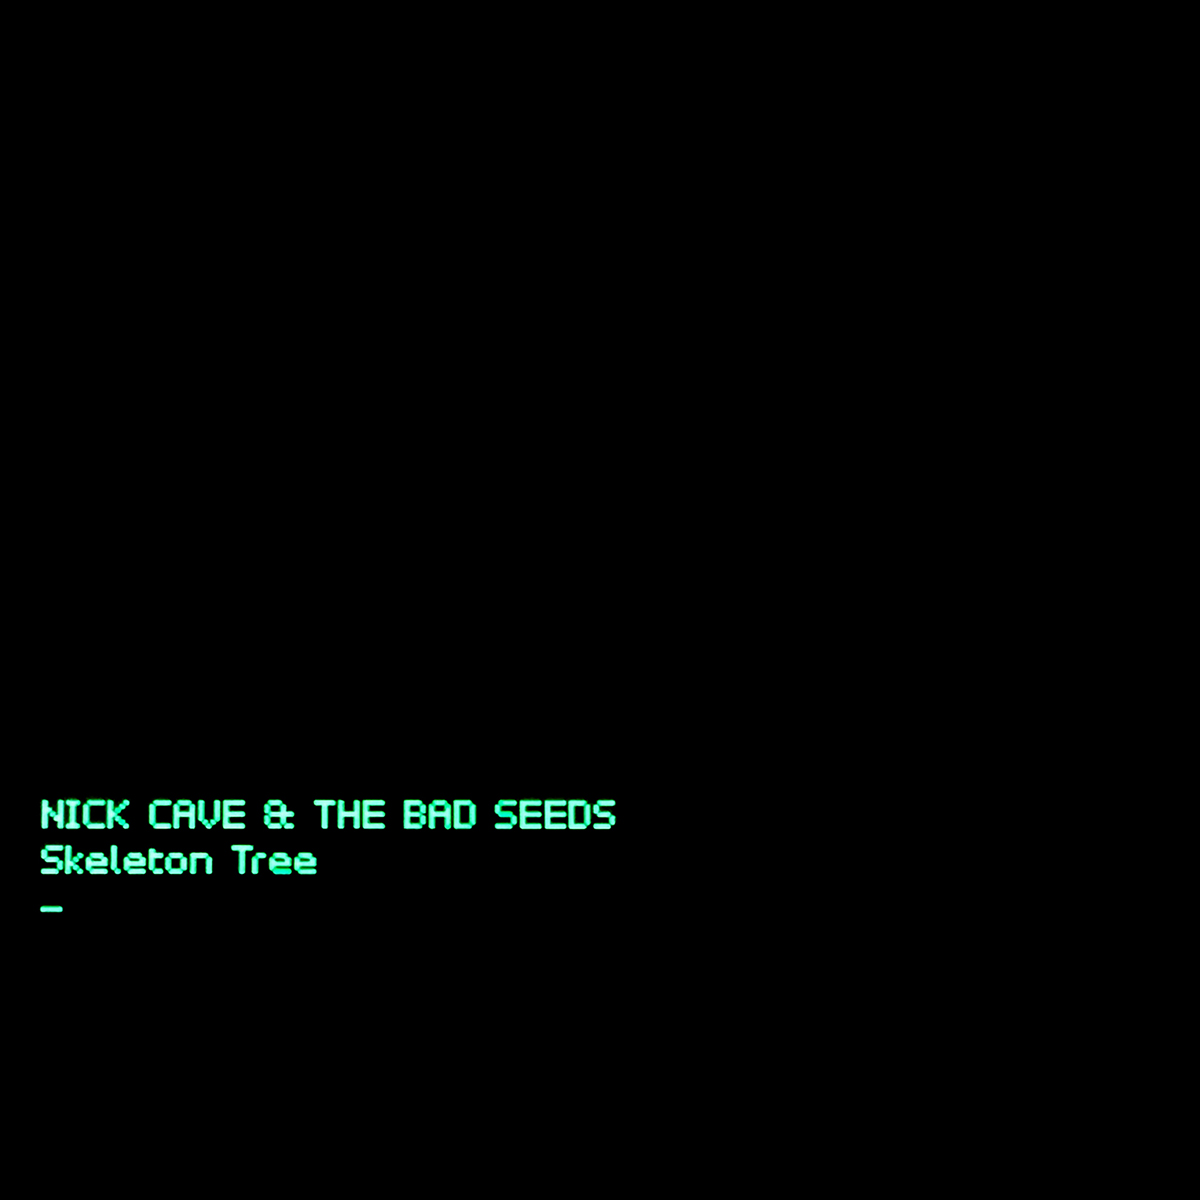 skeleton-tree-nick-cave-the-bad-seeds